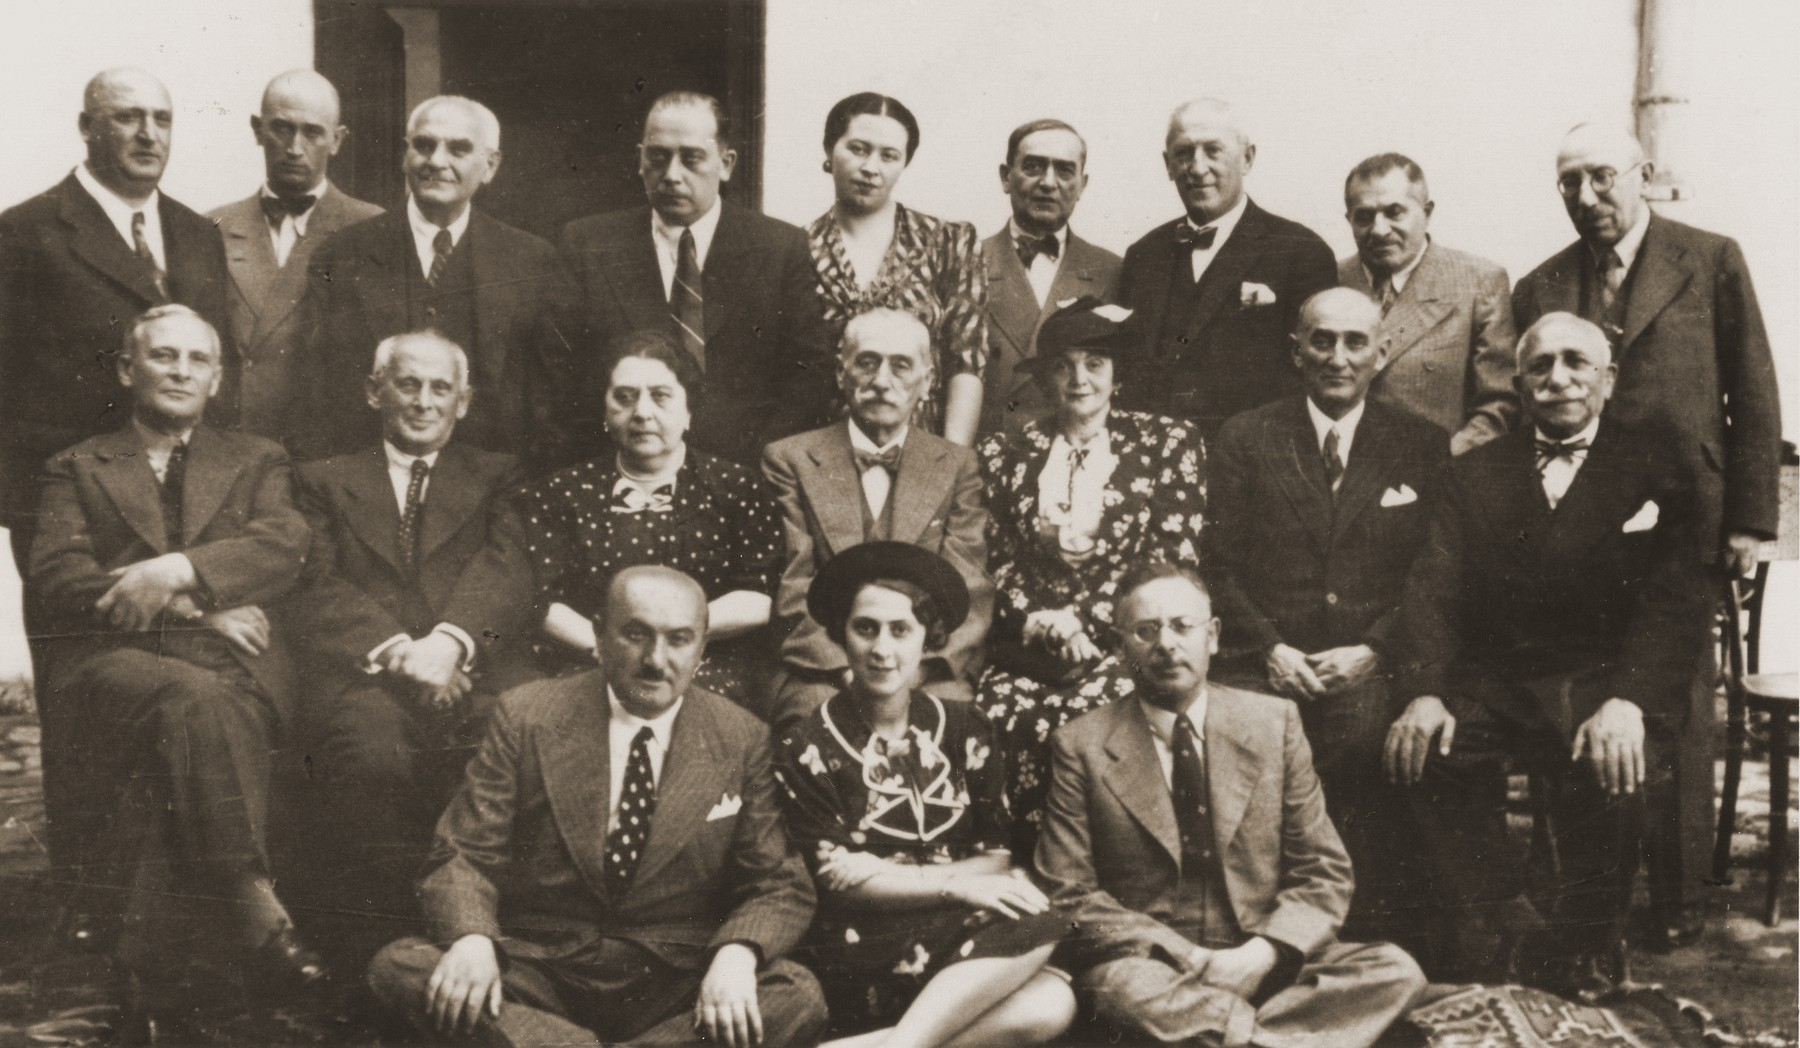 Members of the mostly Jewish Masonic lodge in Czernowitz celebrate the 70th birthday of Dr. Isidor Gold (center).  Max Gottfried is pictured in the top row at the right.  Women attended lodge meetings only on special occasions such as this one.